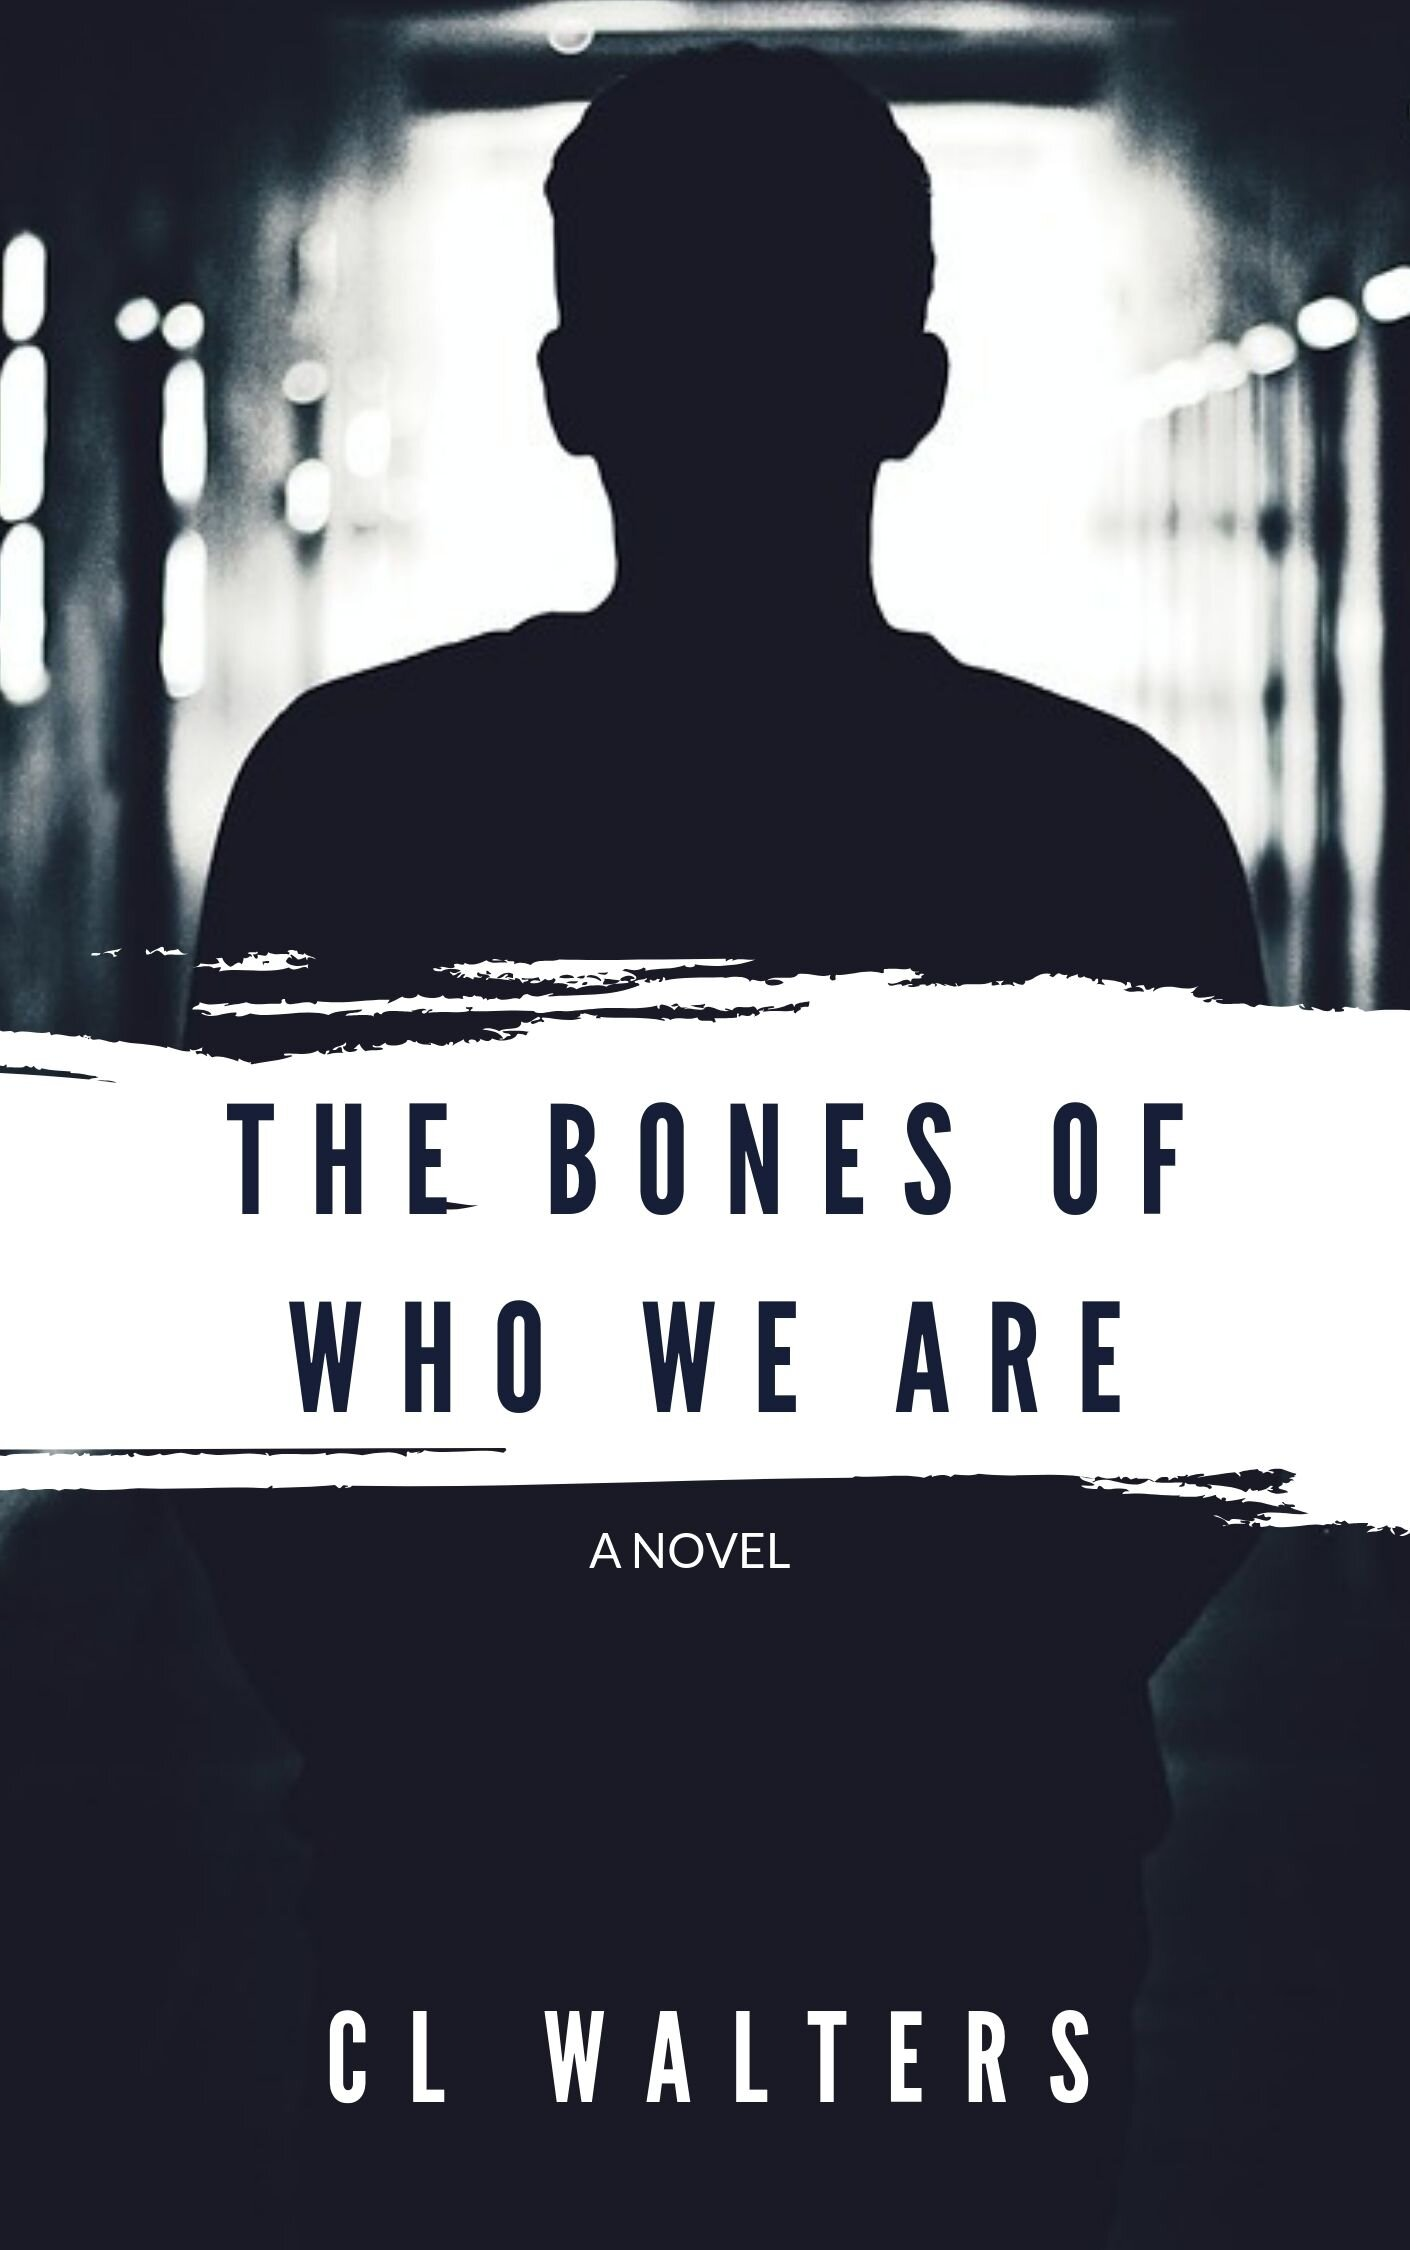 The Bones of Who We Are, the final chapter in the Cantos Chronicles Trilogy, goes on Sale October 1, 2019